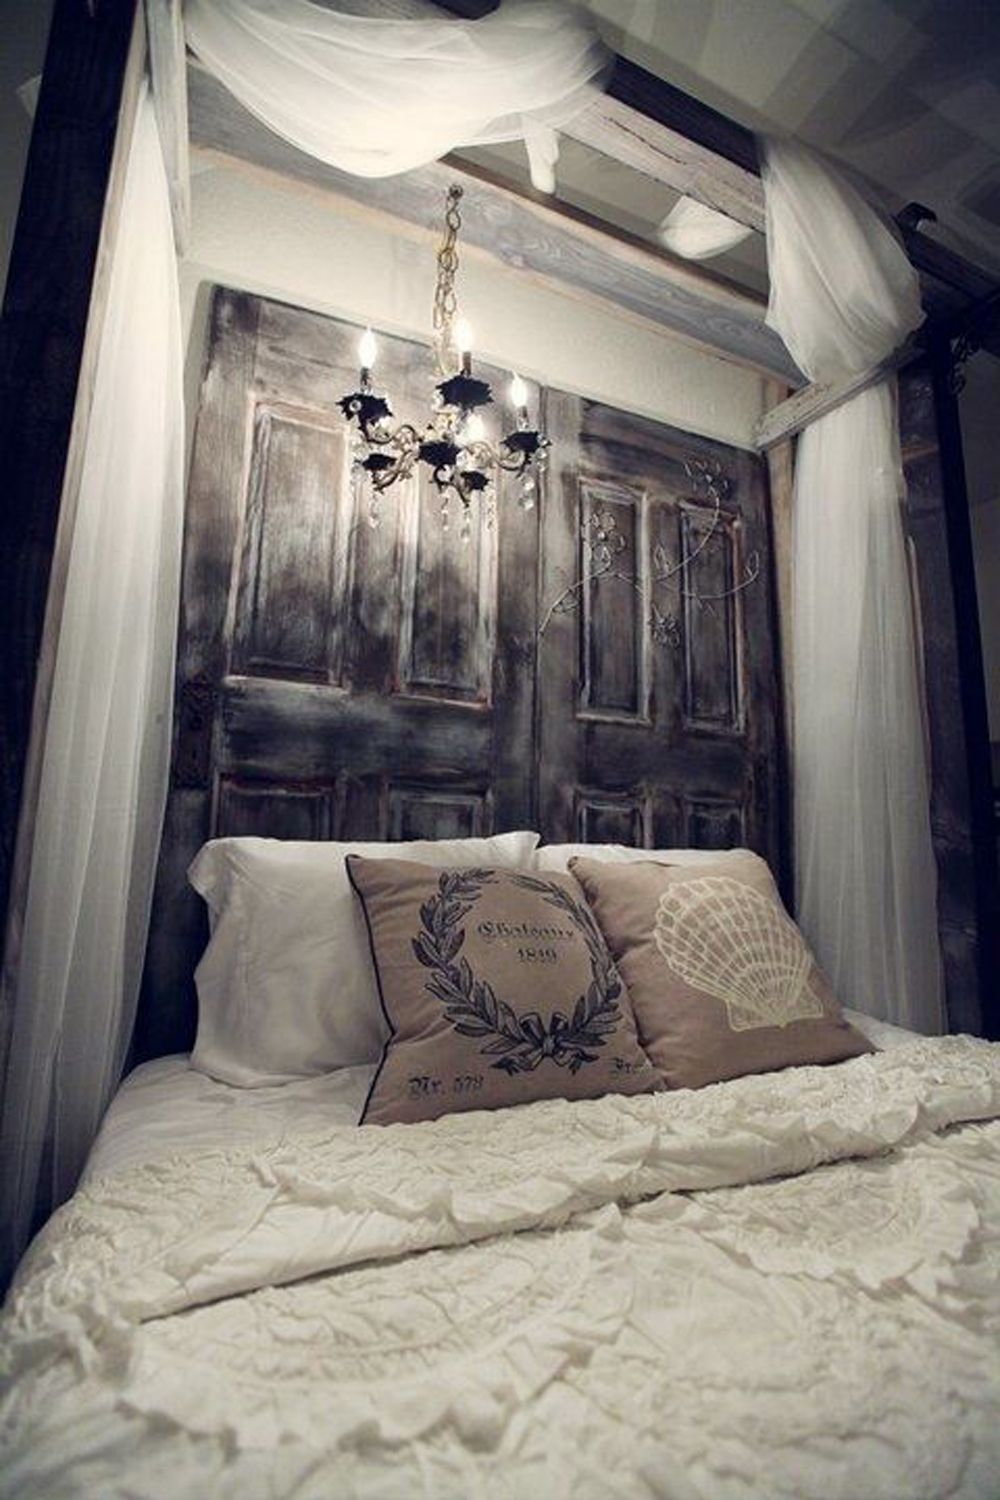 Industrial Decor Style Vintage Id Like The Curtains To Be Able Go Around Whole Bed Needs A Canopy